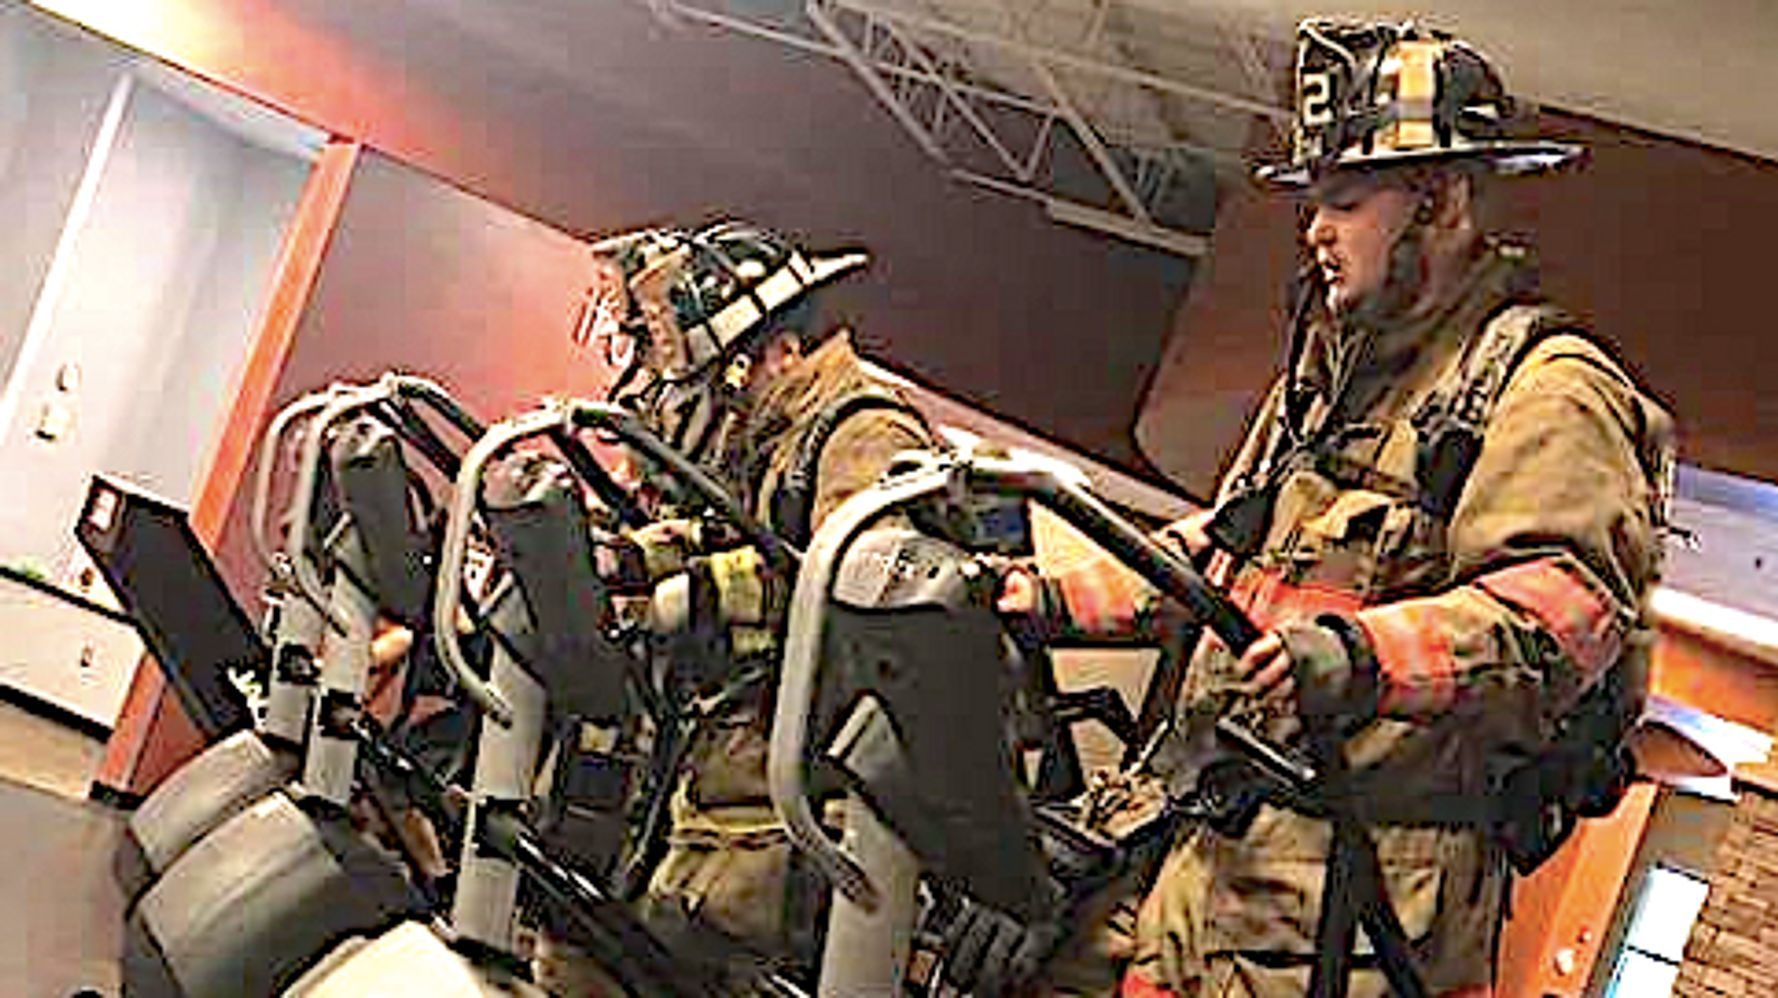 Firefighters Pay Tribute To 9/11 Heroes By Climbing 110